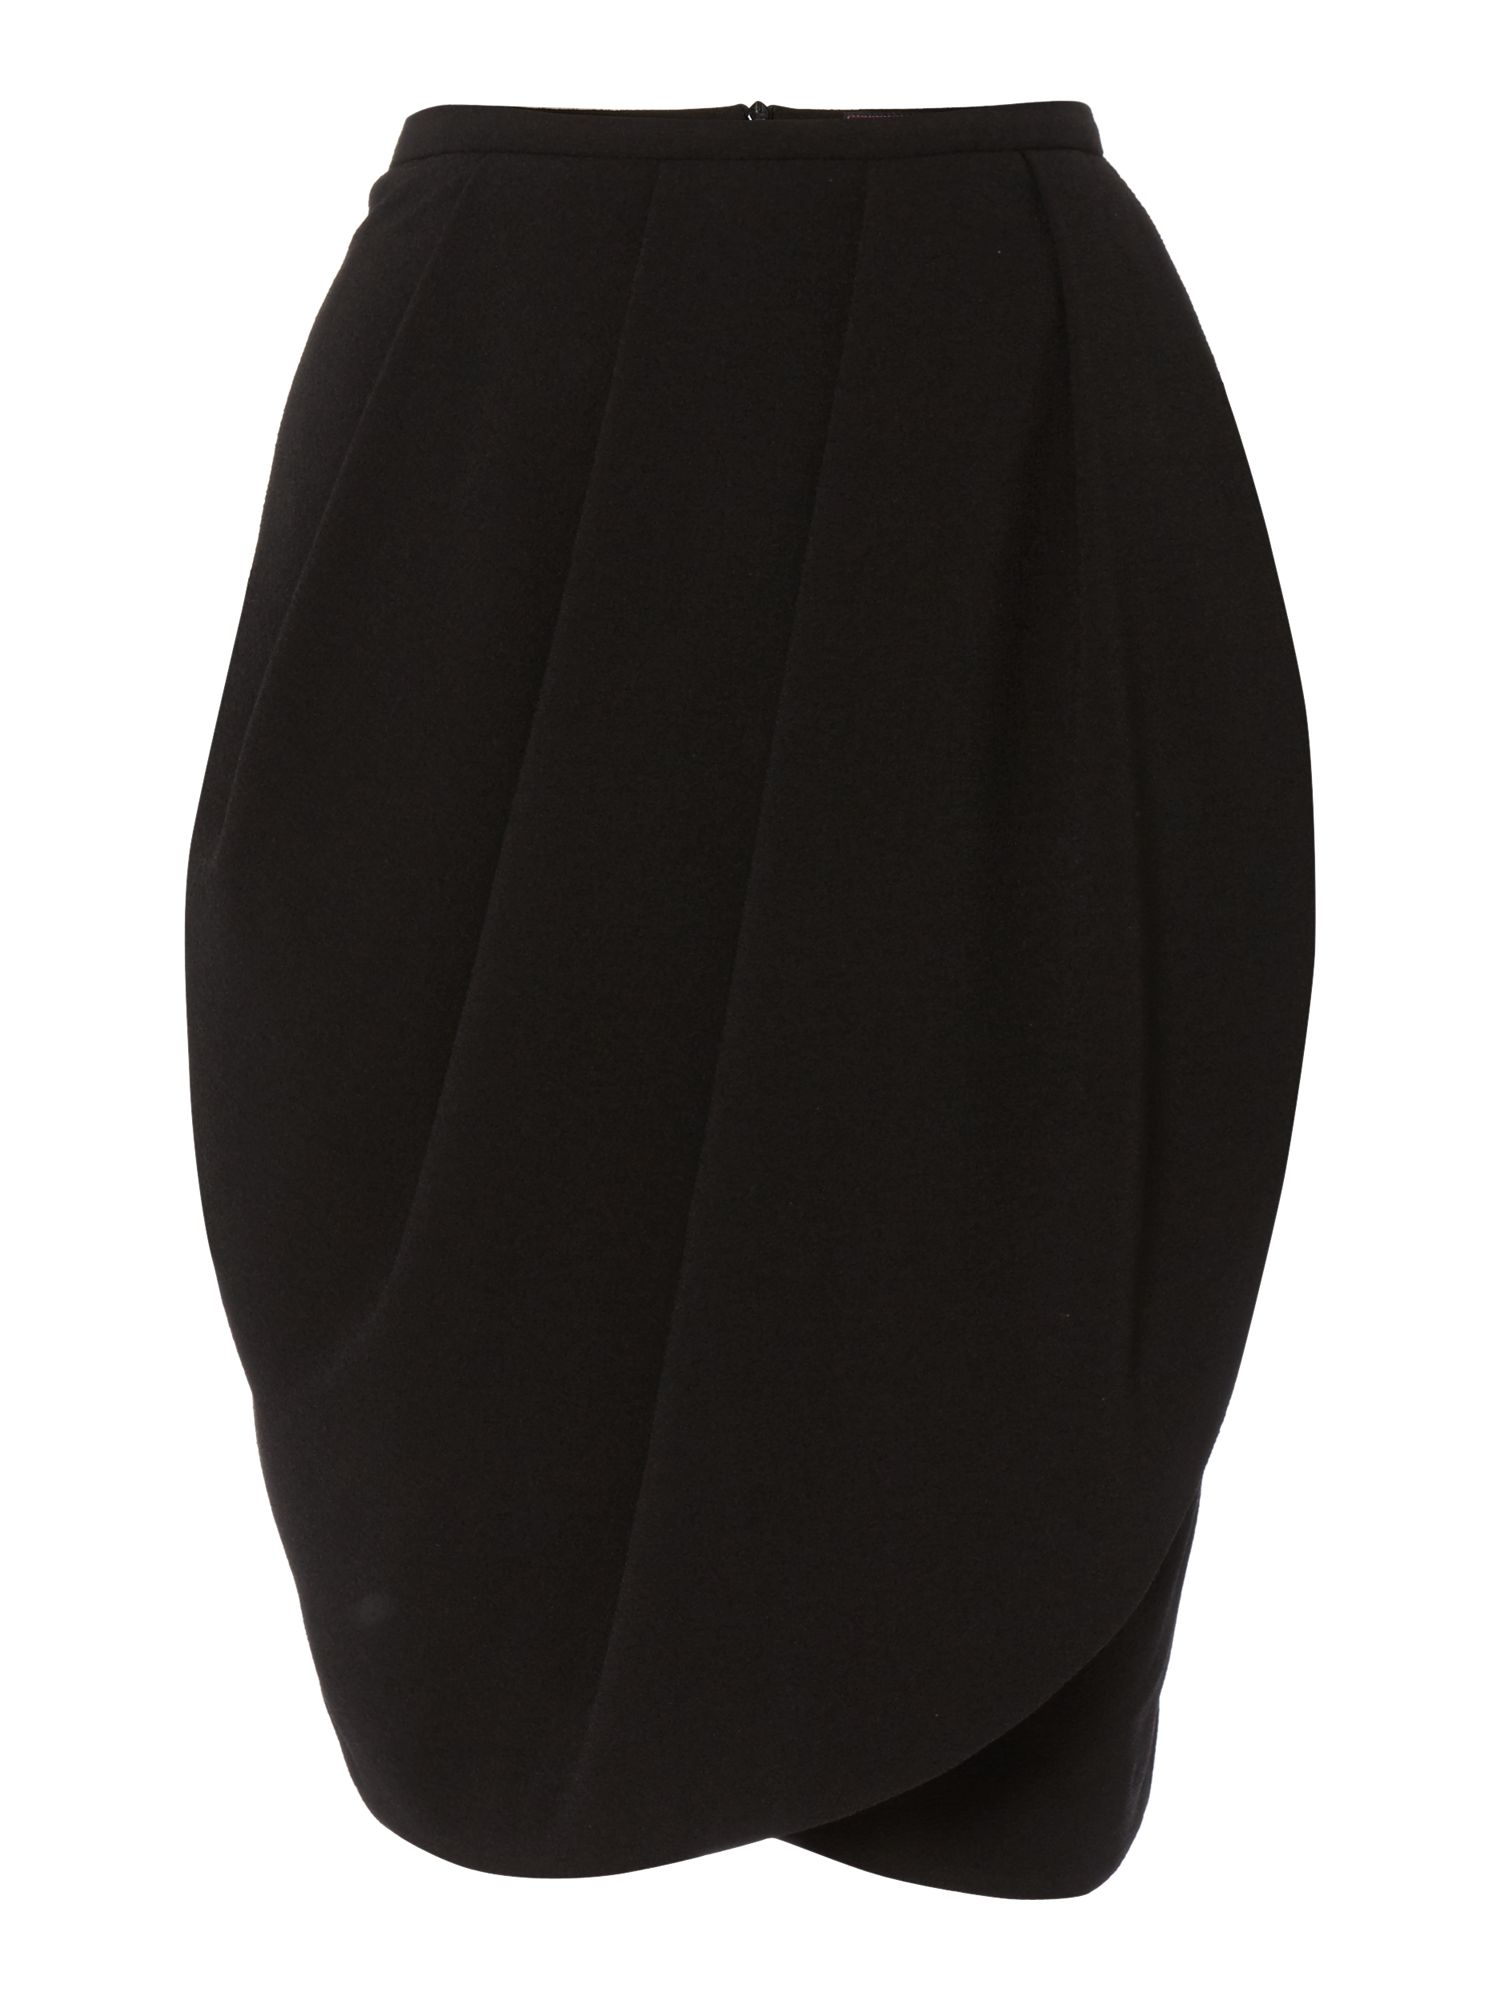 Wrap pleat tulip skirt